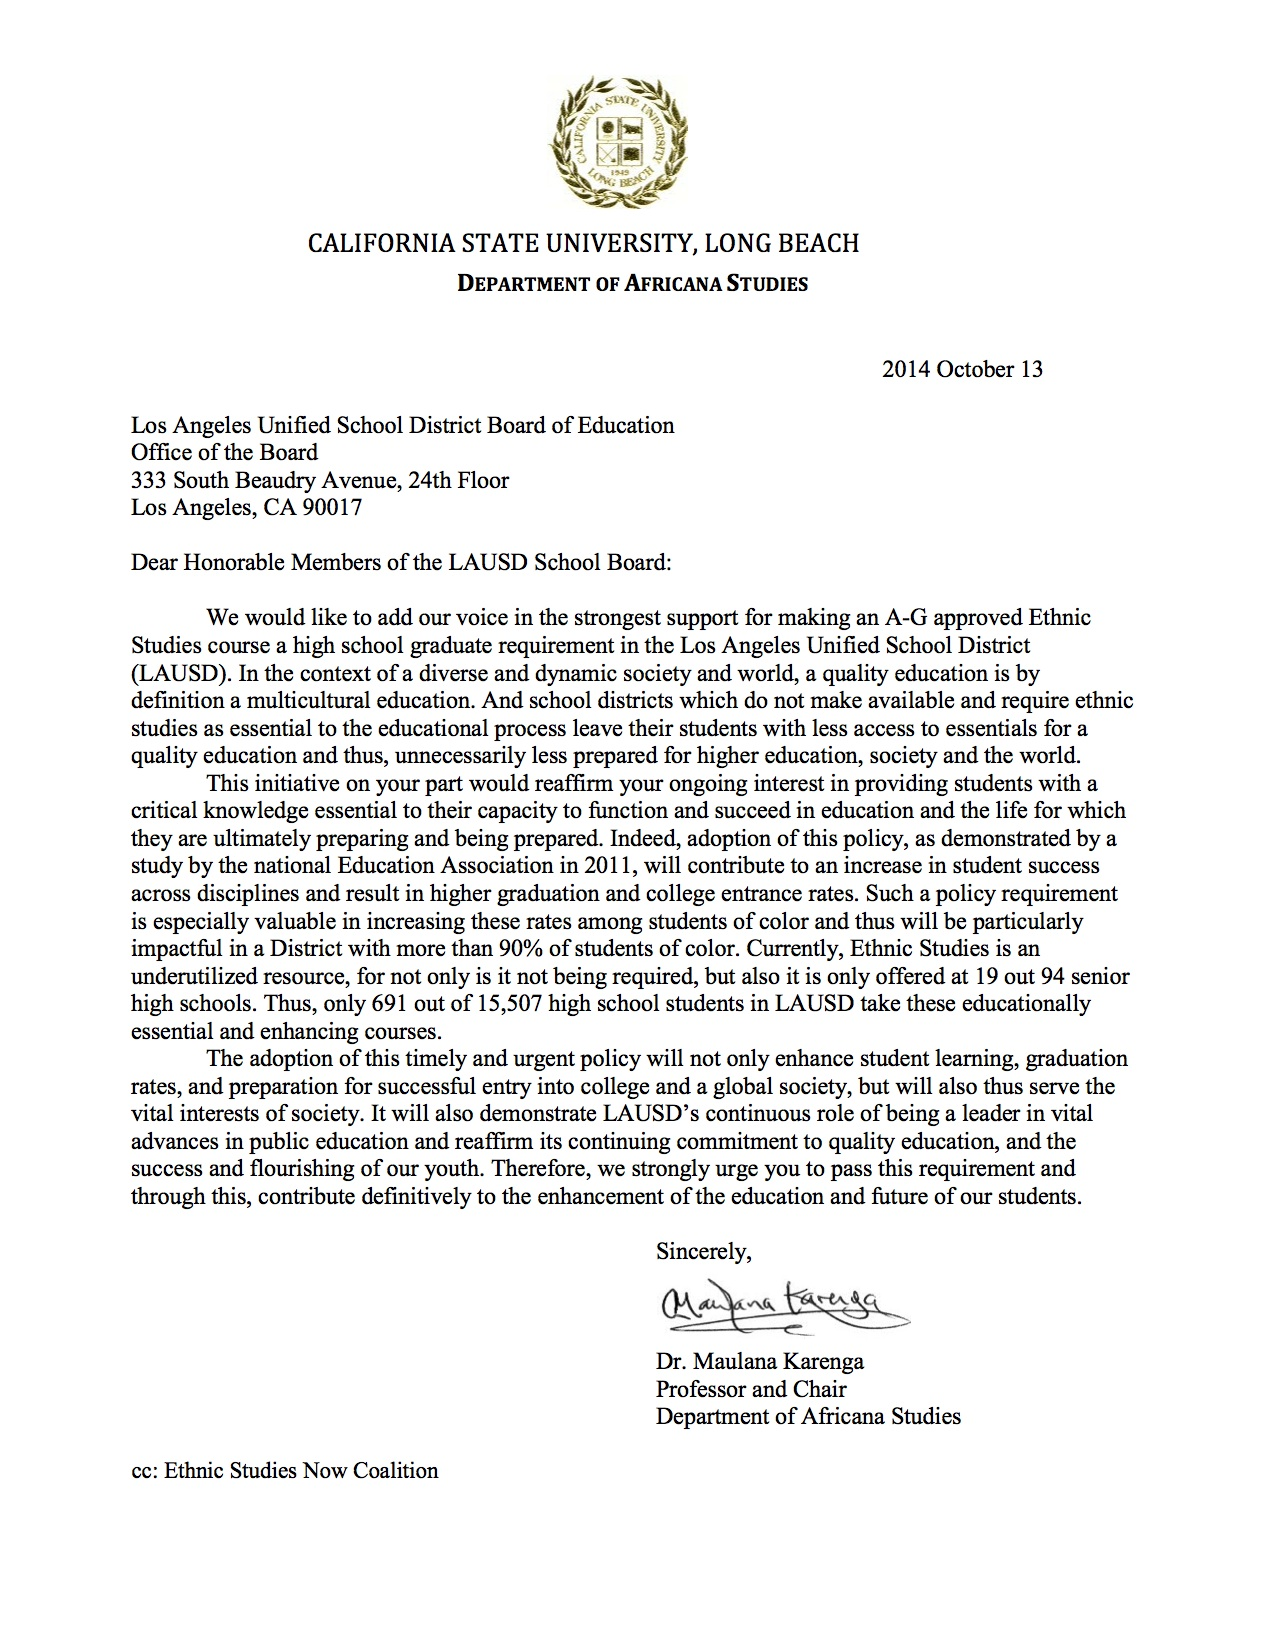 Dr_Maulana_Karenga_AFRSCSULB_Letter_of_Support_fo_LAUSD_Ethnic_Studies_Requirement.jpg